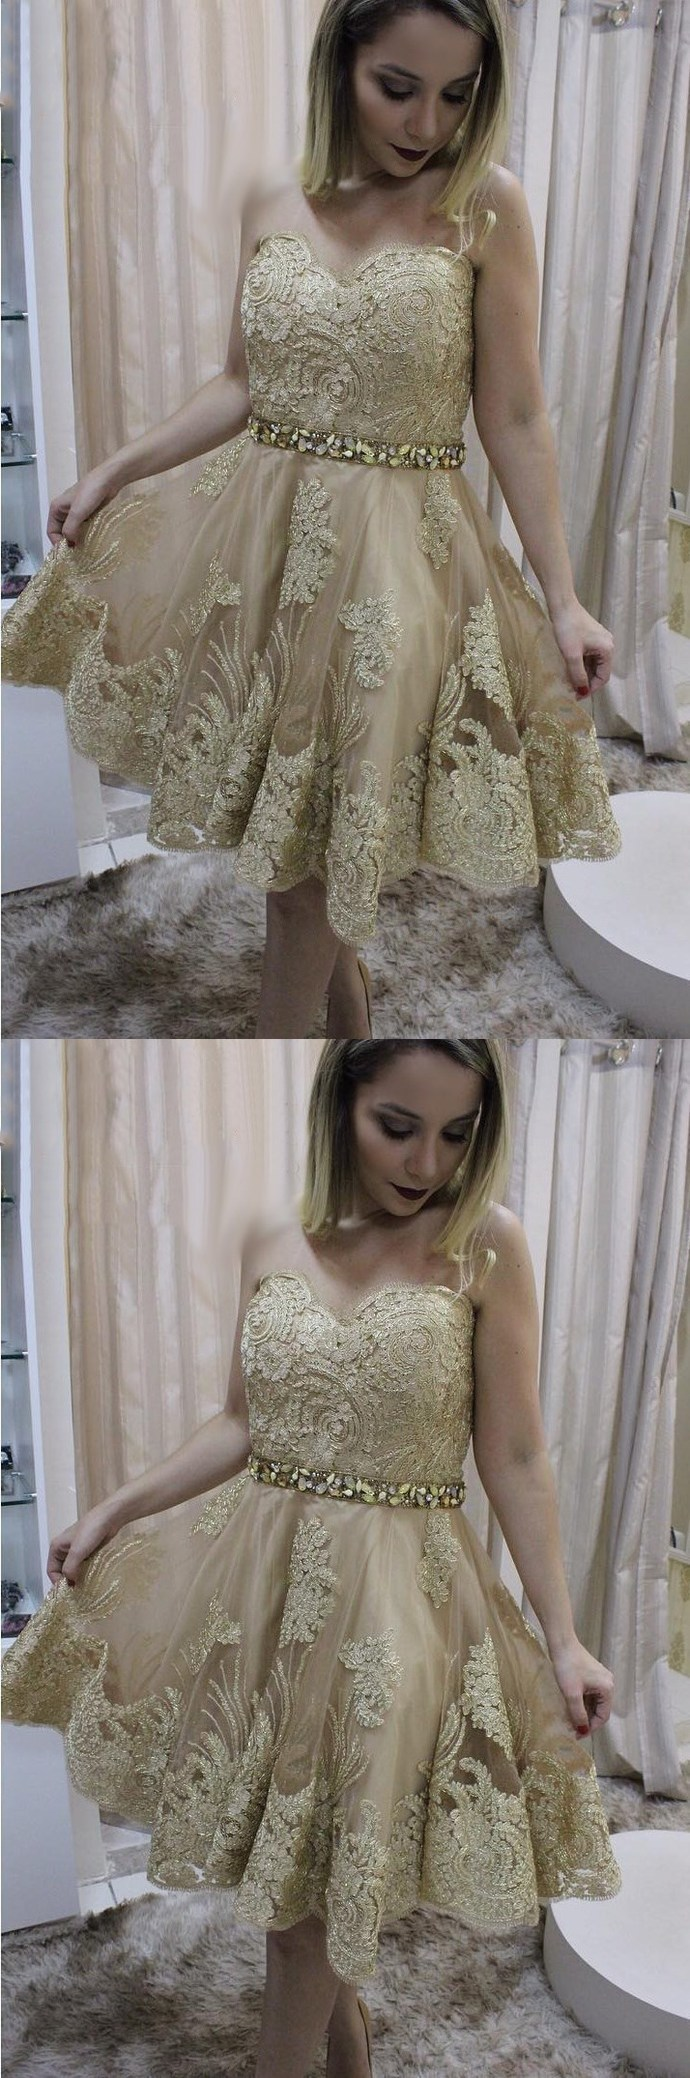 Charming Gold Lace Short Homecoming Dress, Short Sweetheart Pretty Party Dress